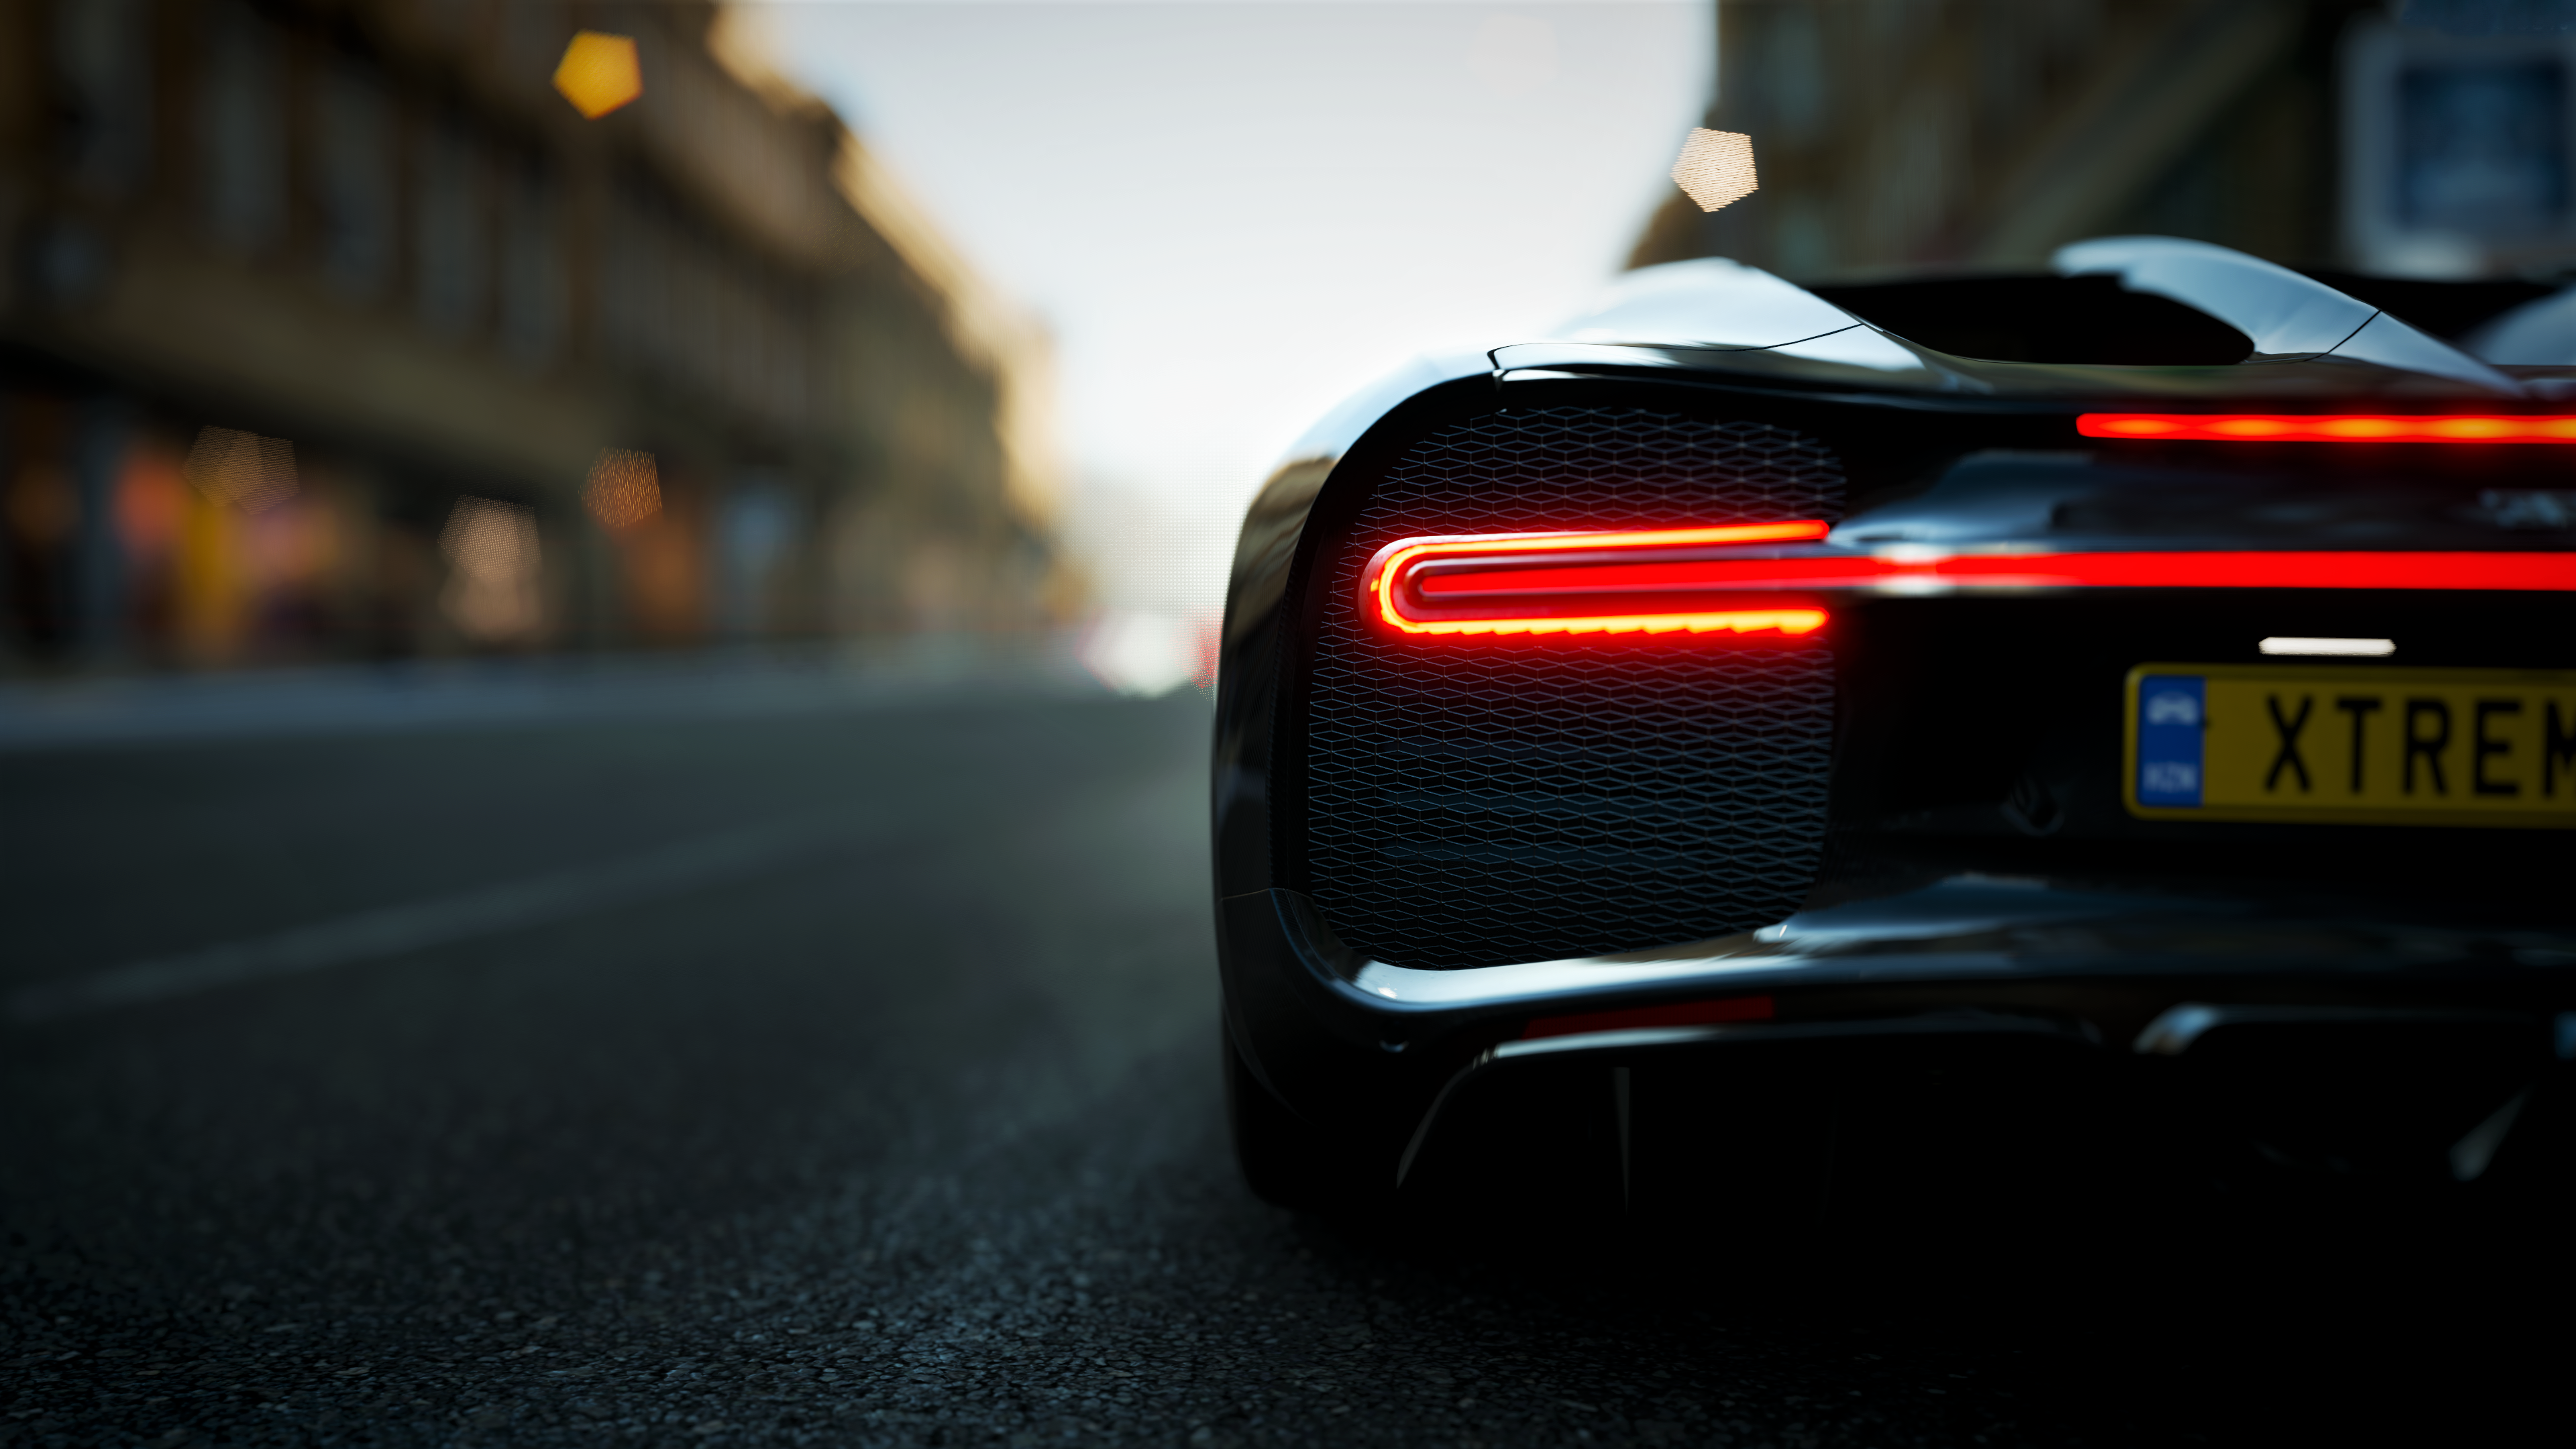 We all know that forza horizon 3 will include some of aust. 4k Clean Bugatti Chiron Wallpaper 3840x2160 Forza Horizon 4 Computer Wallpaper Desktop Wallpapers Laptop Wallpaper Desktop Wallpapers 4k Wallpapers For Pc